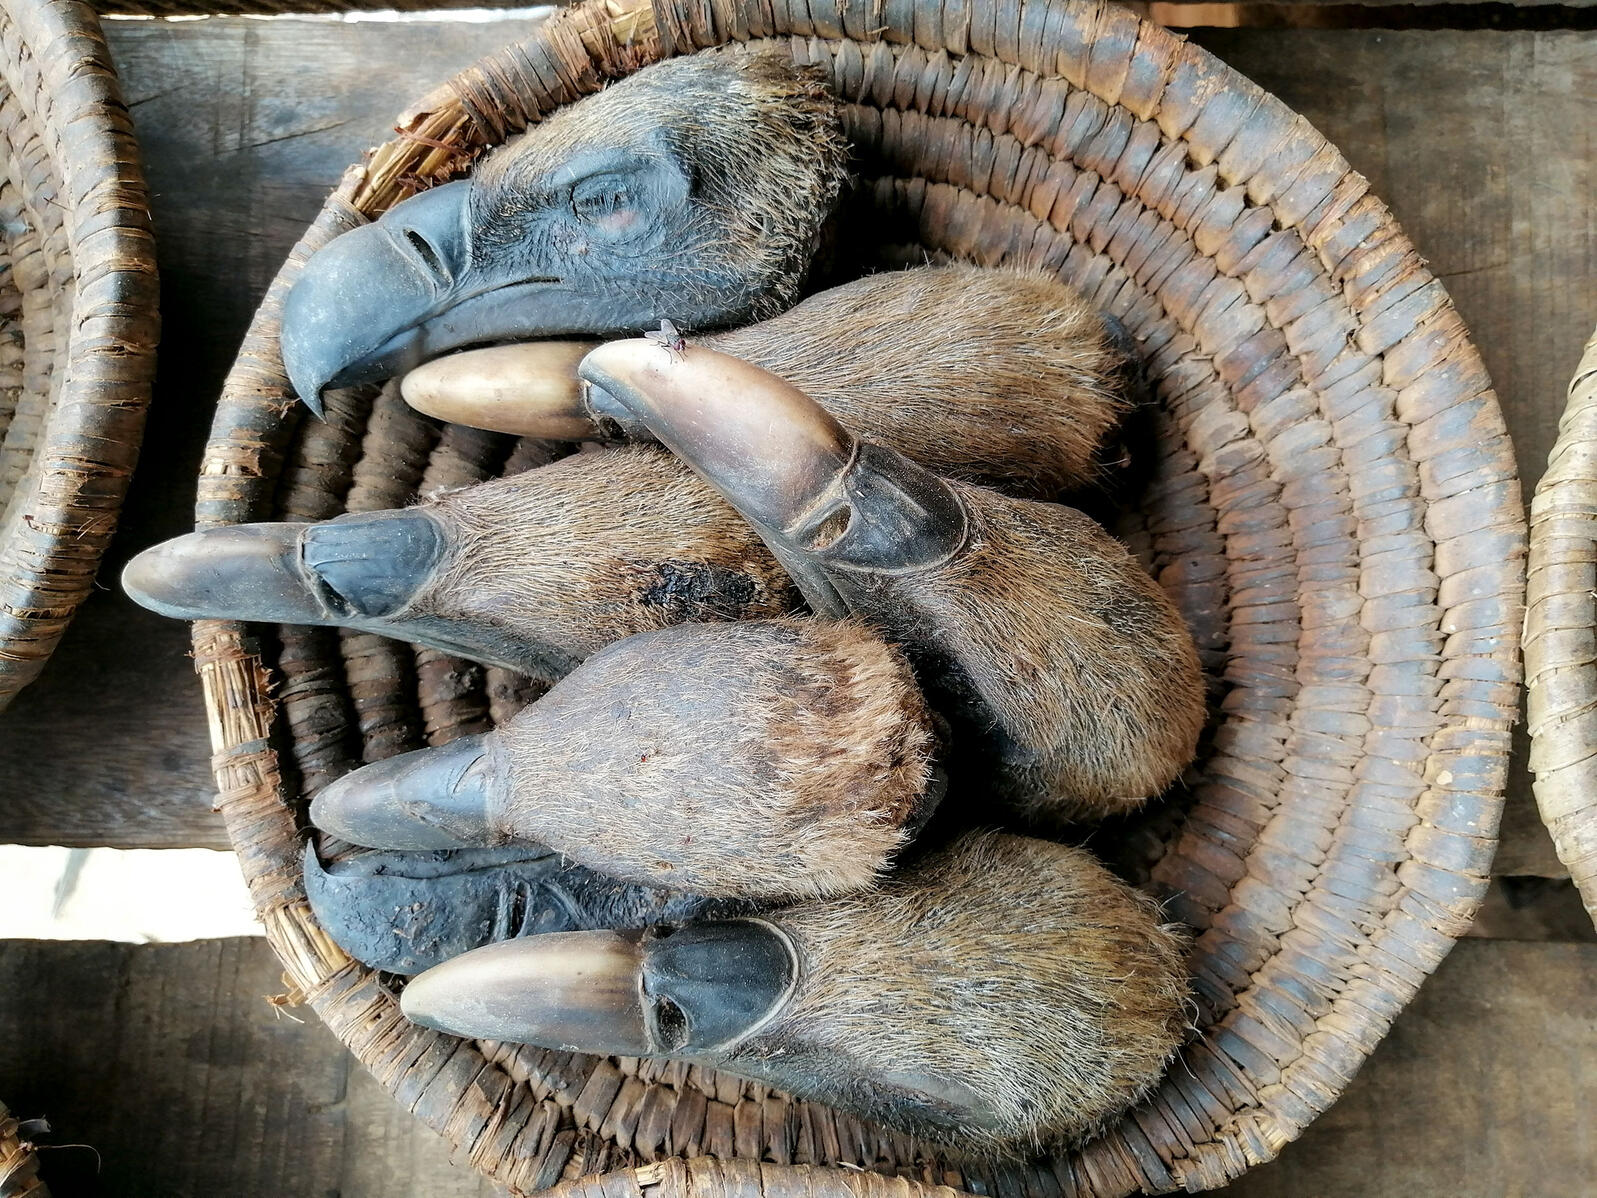 The heads of Rüppell's Vultures on display for sale at a wildlife market in Ibadan, Nigeria. Stephen Awoyemi